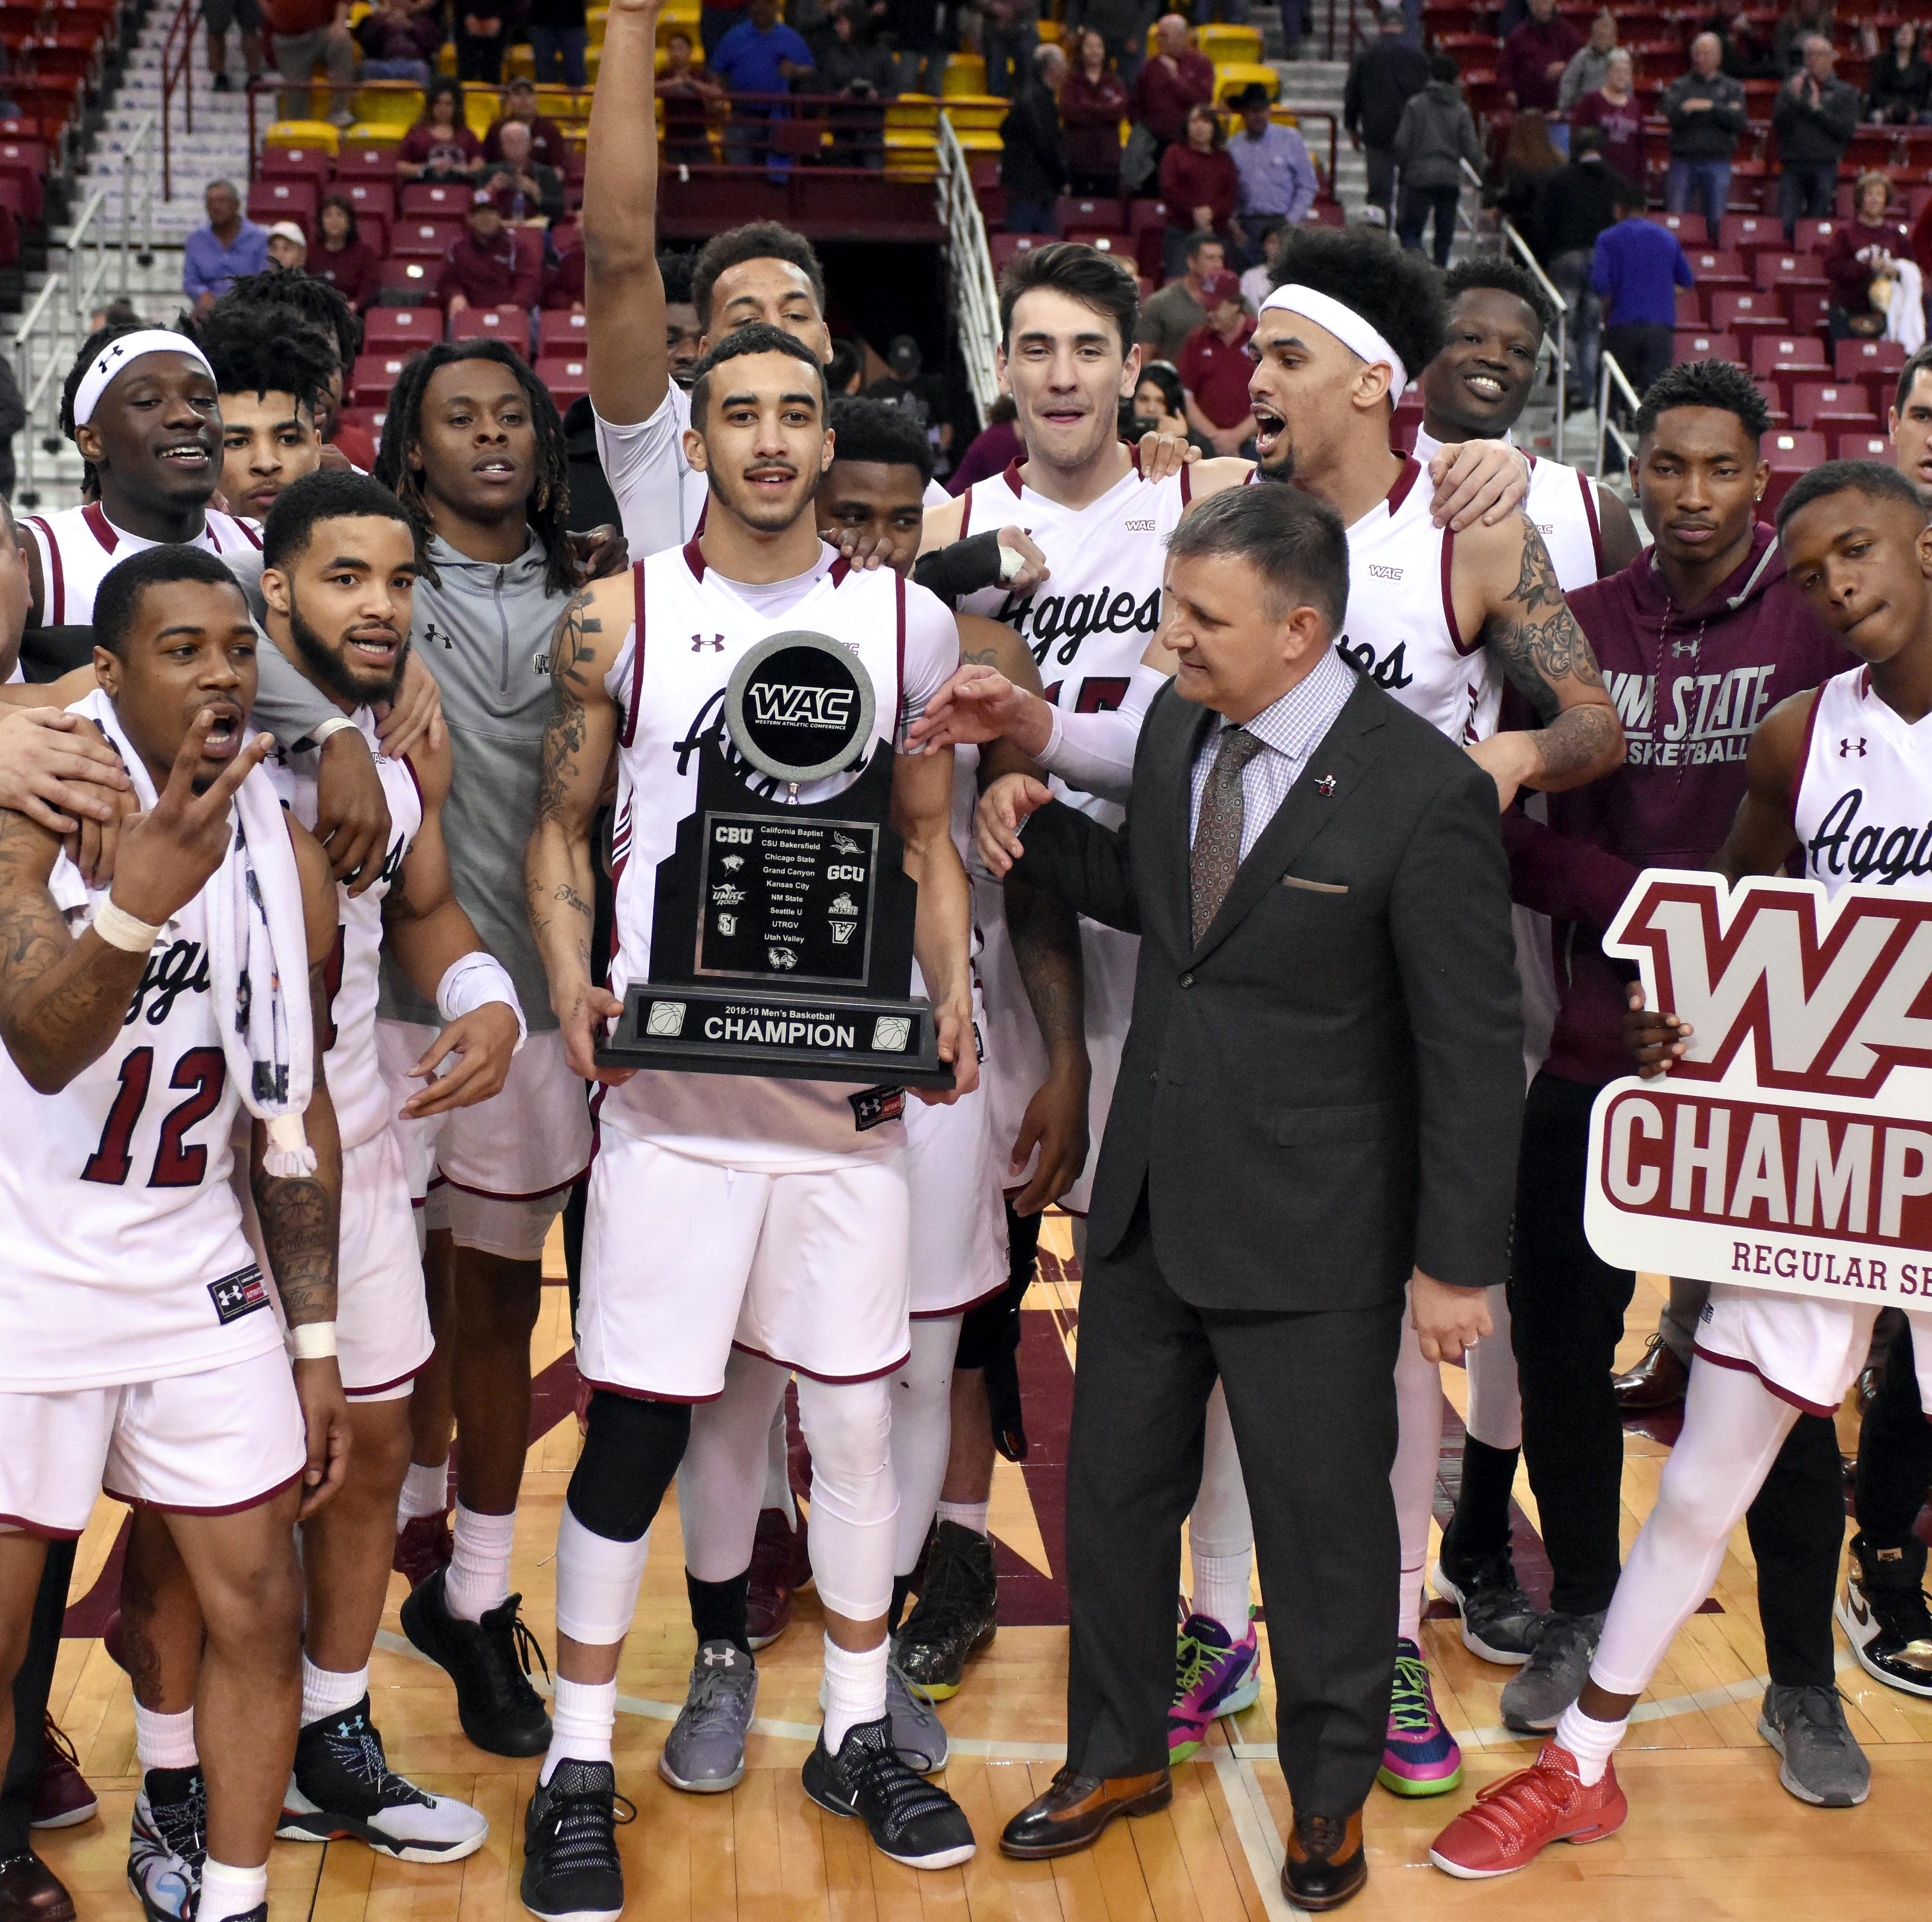 NMSU to host send-offs for men's and women's basketball teams